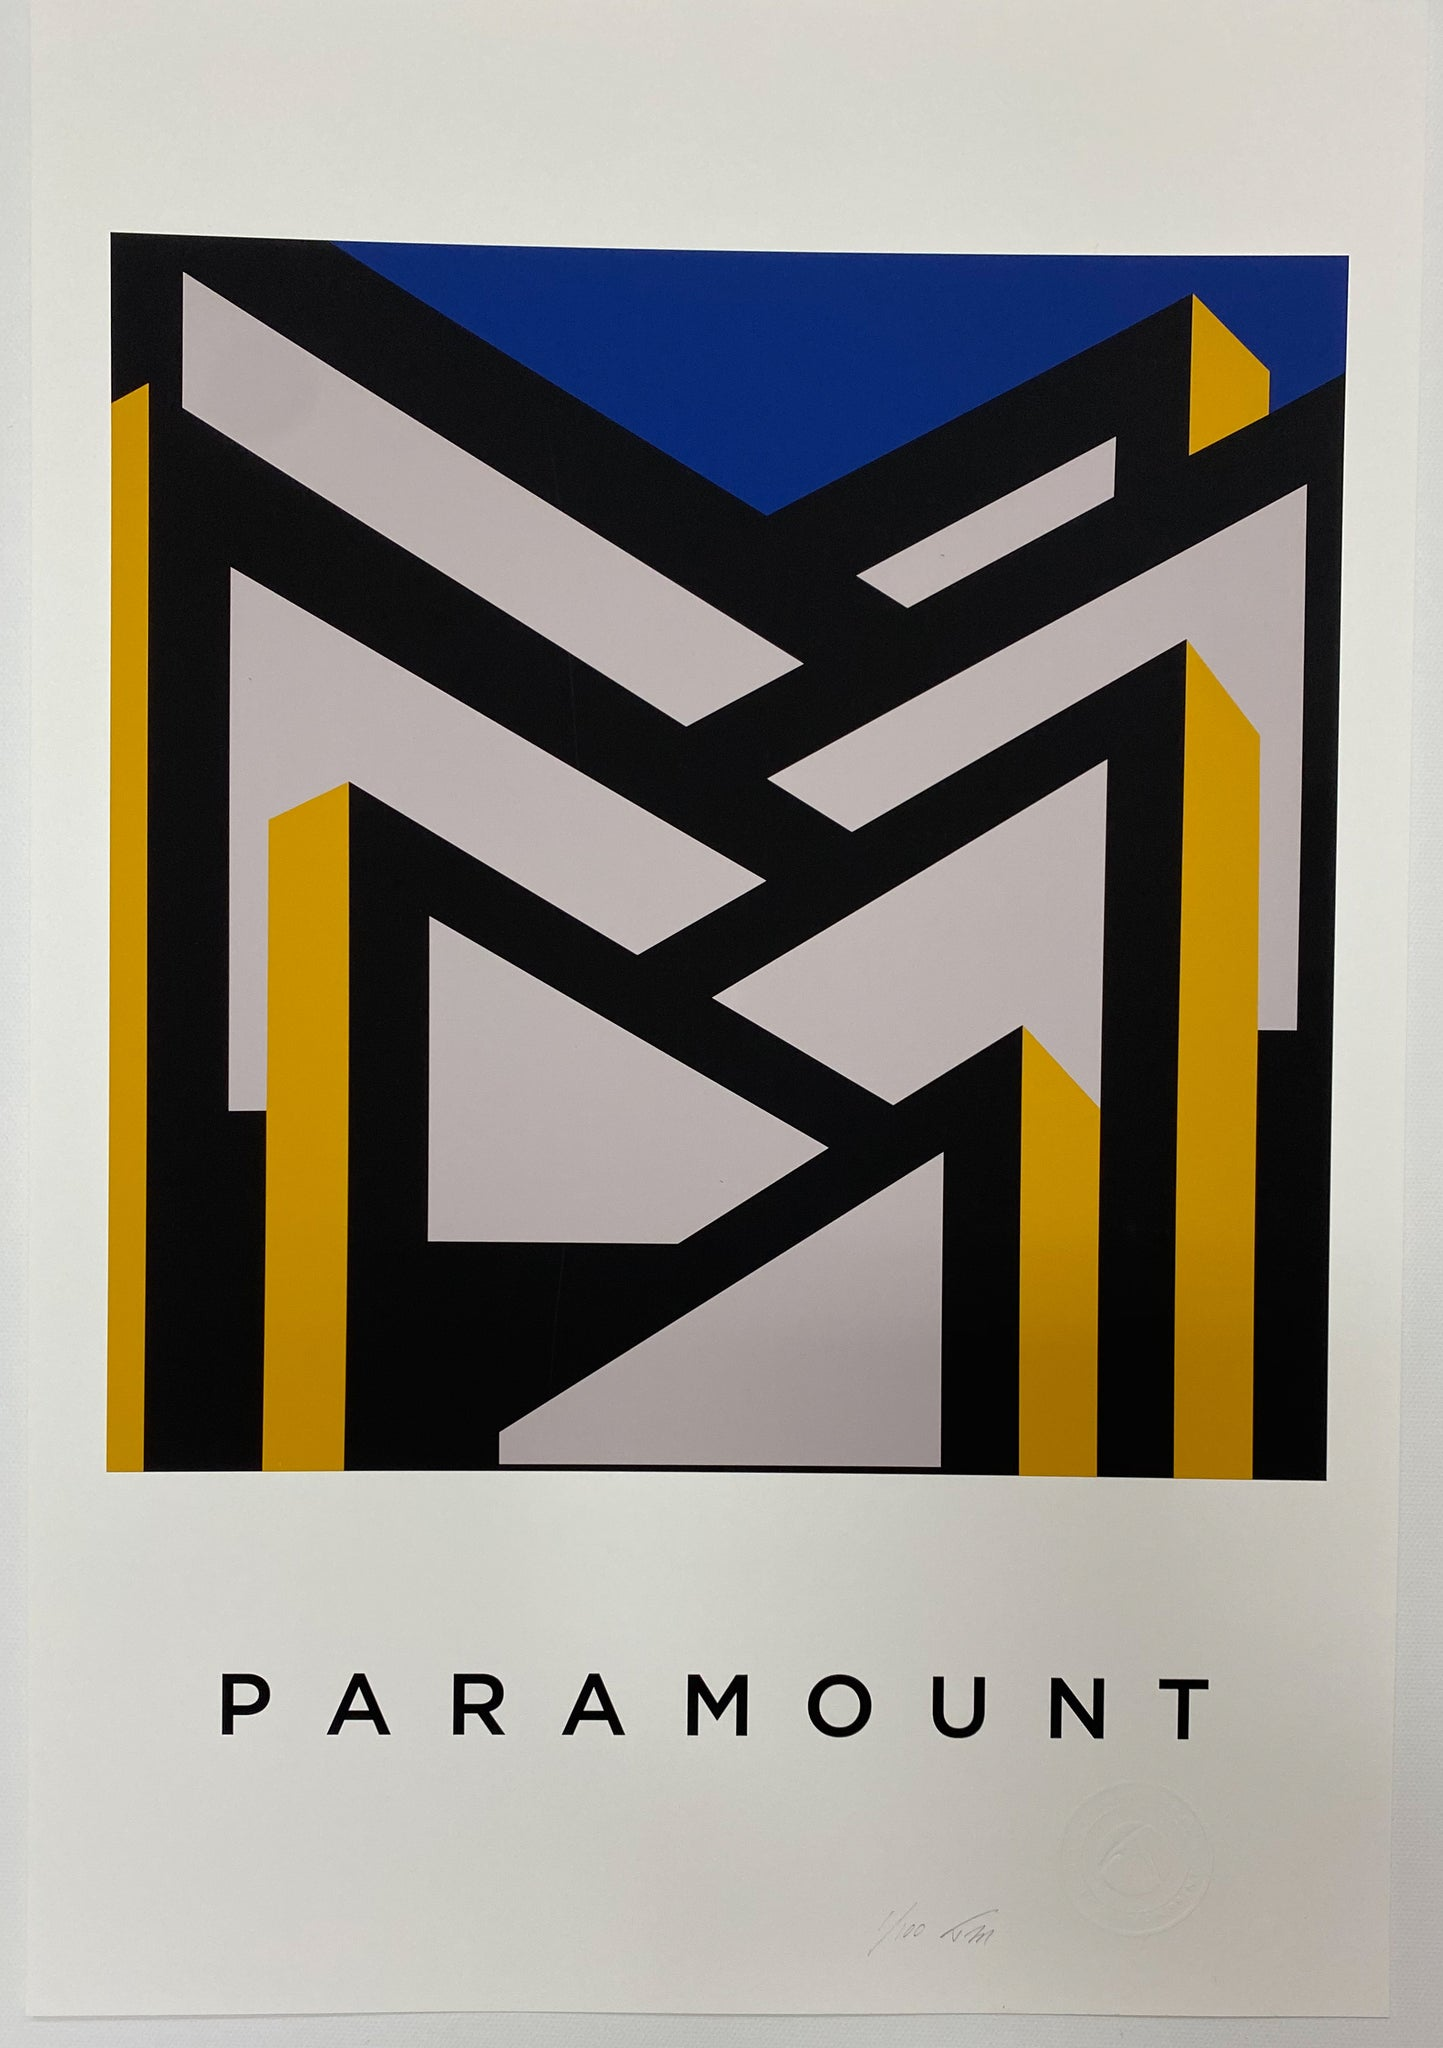 Title: PARAMOUNT  .  A2 Framed, Limited Edition Giclee Print